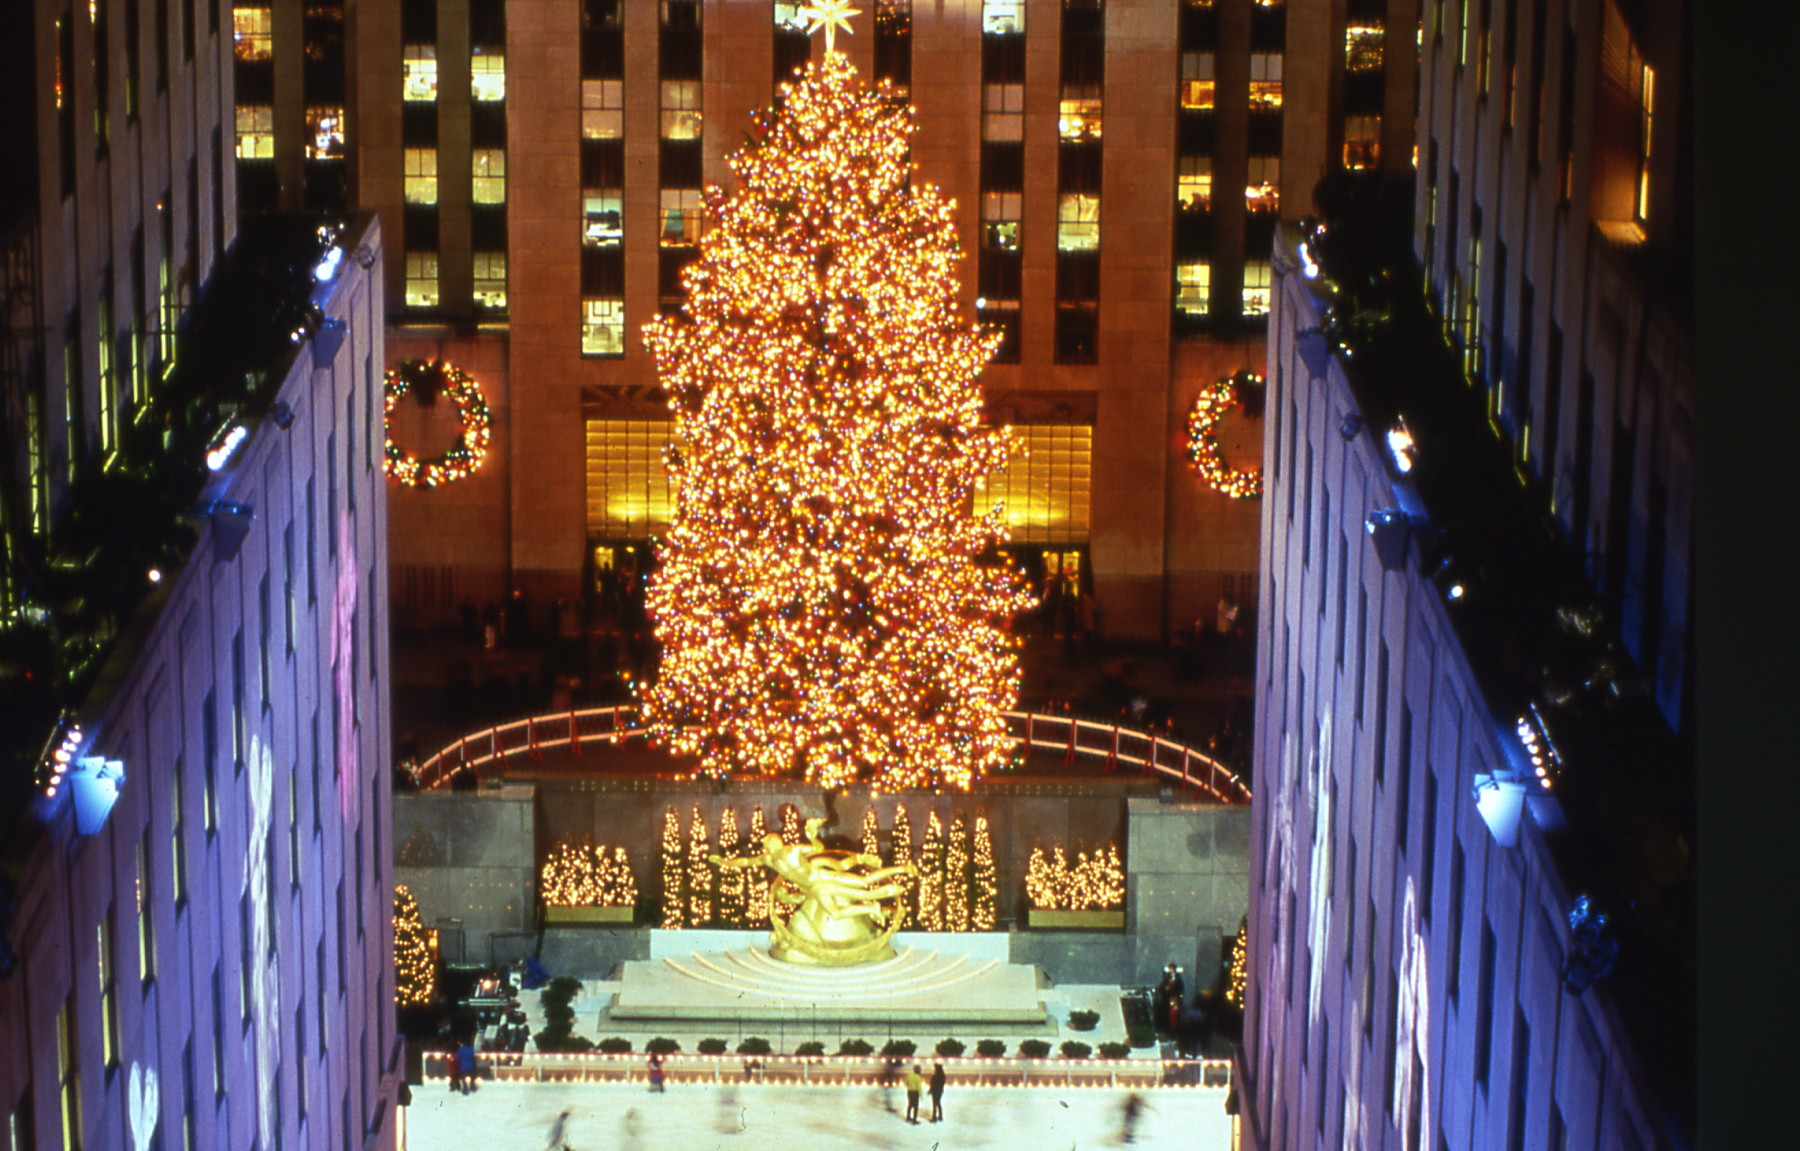 The 1998 Rockefeller Center Christmas Tree | Lauren ...